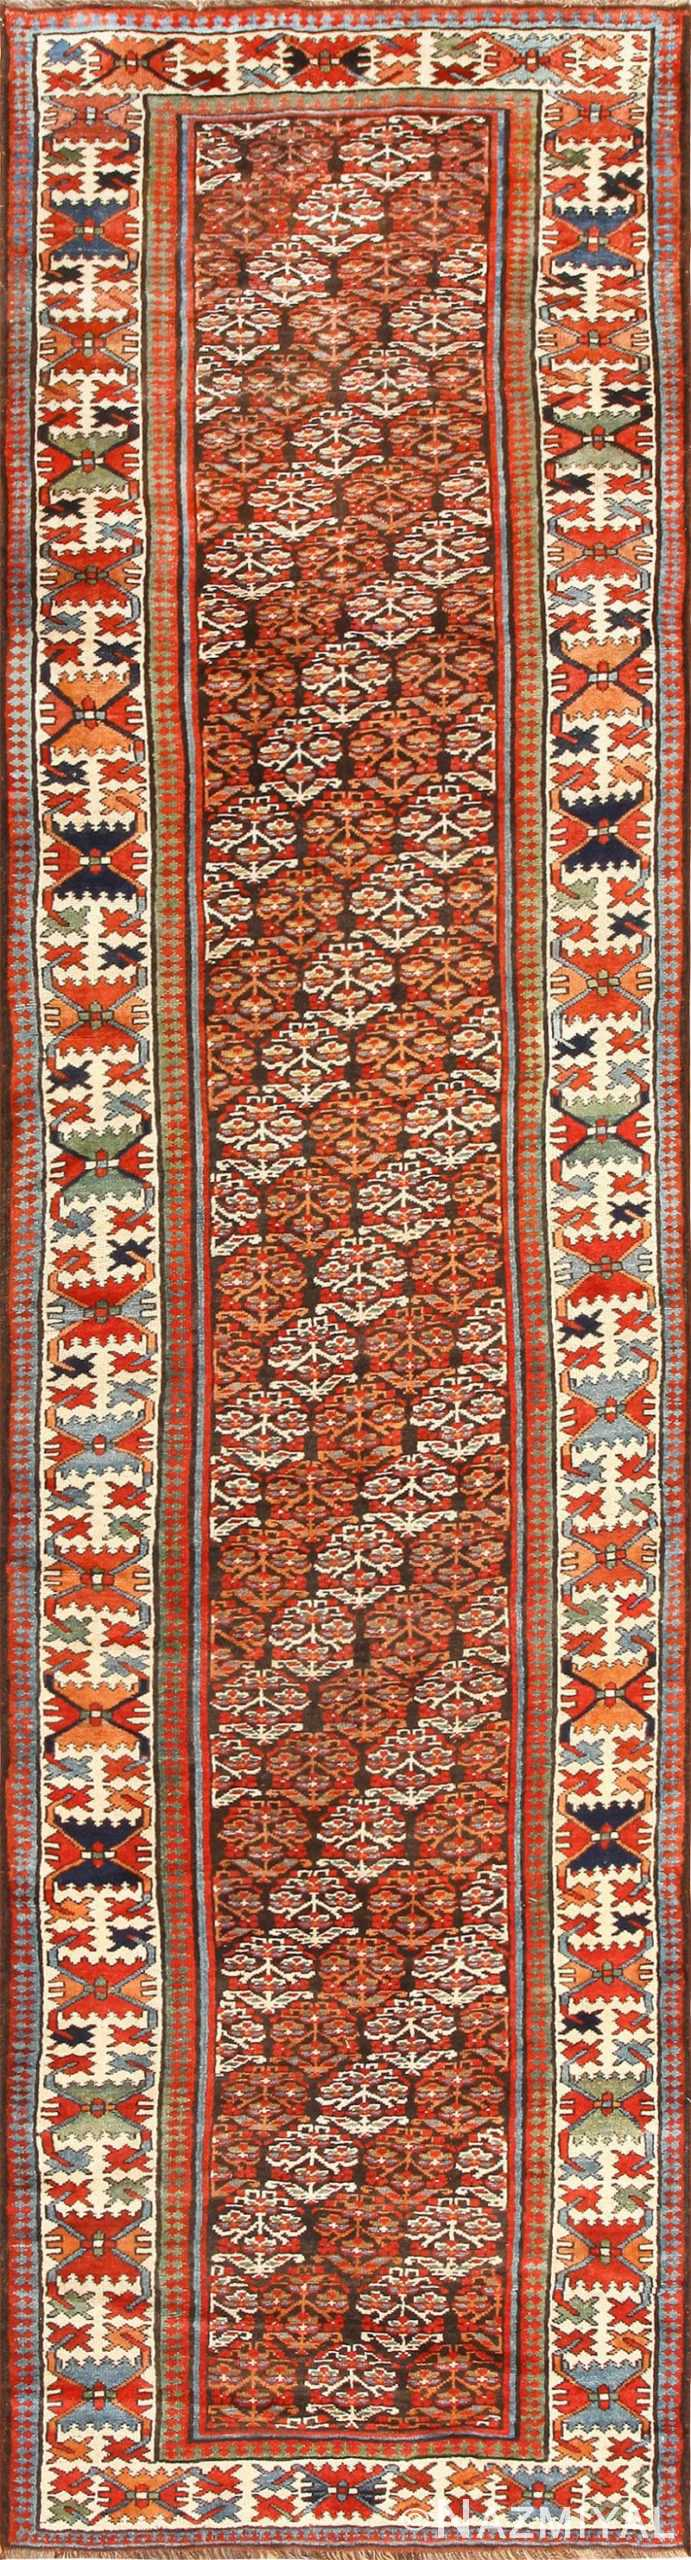 Antique Tribal Northwest Persian Runner Rug 50669 Nazmiyal